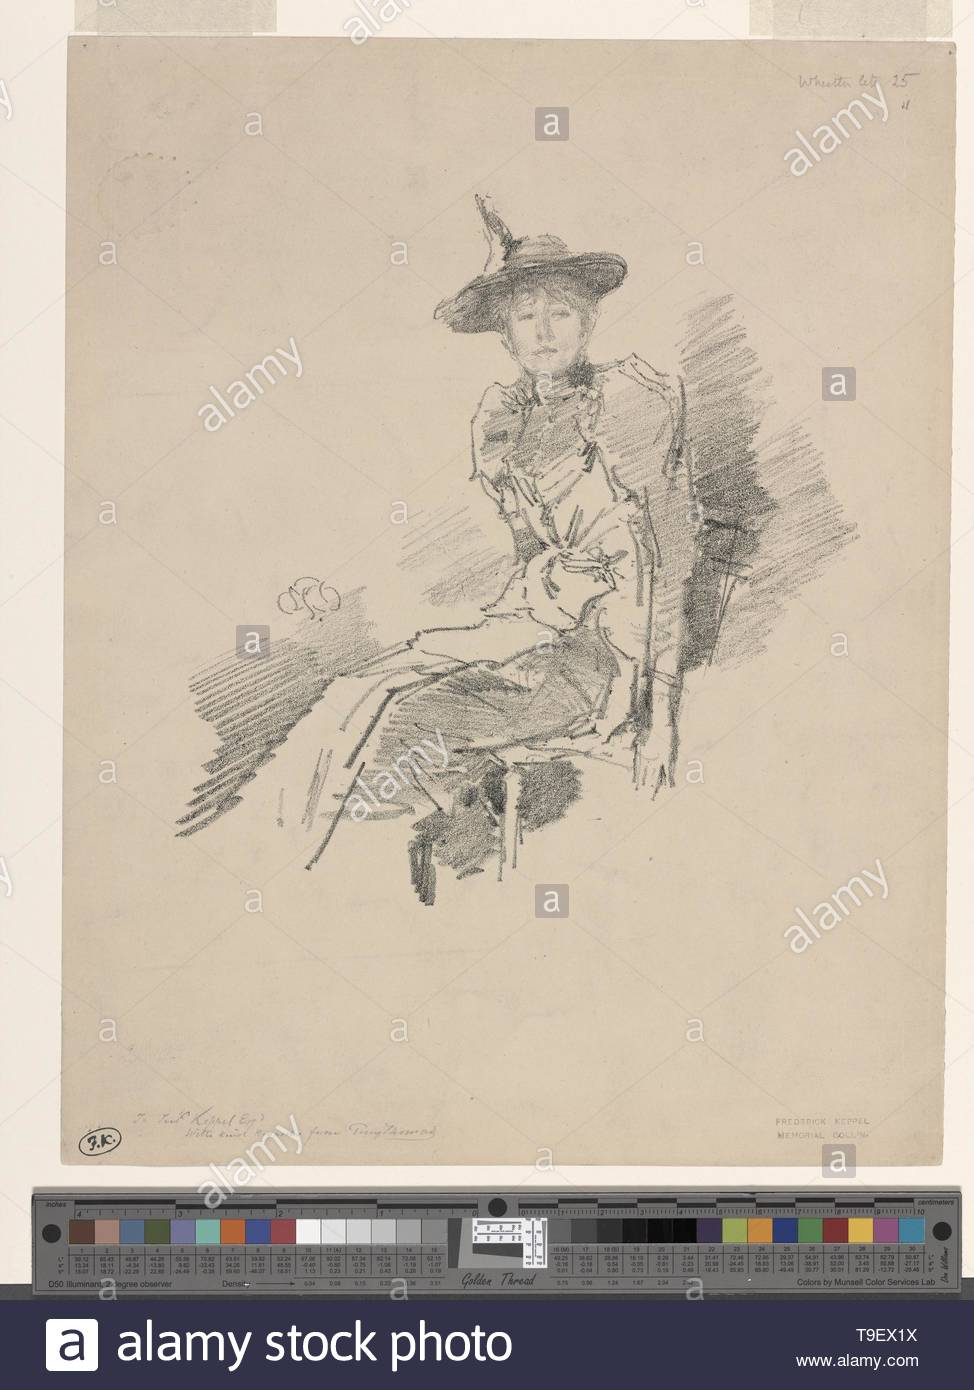 Whistler,JamesMcNeill(1834-1903)-The winged hat - Stock Image